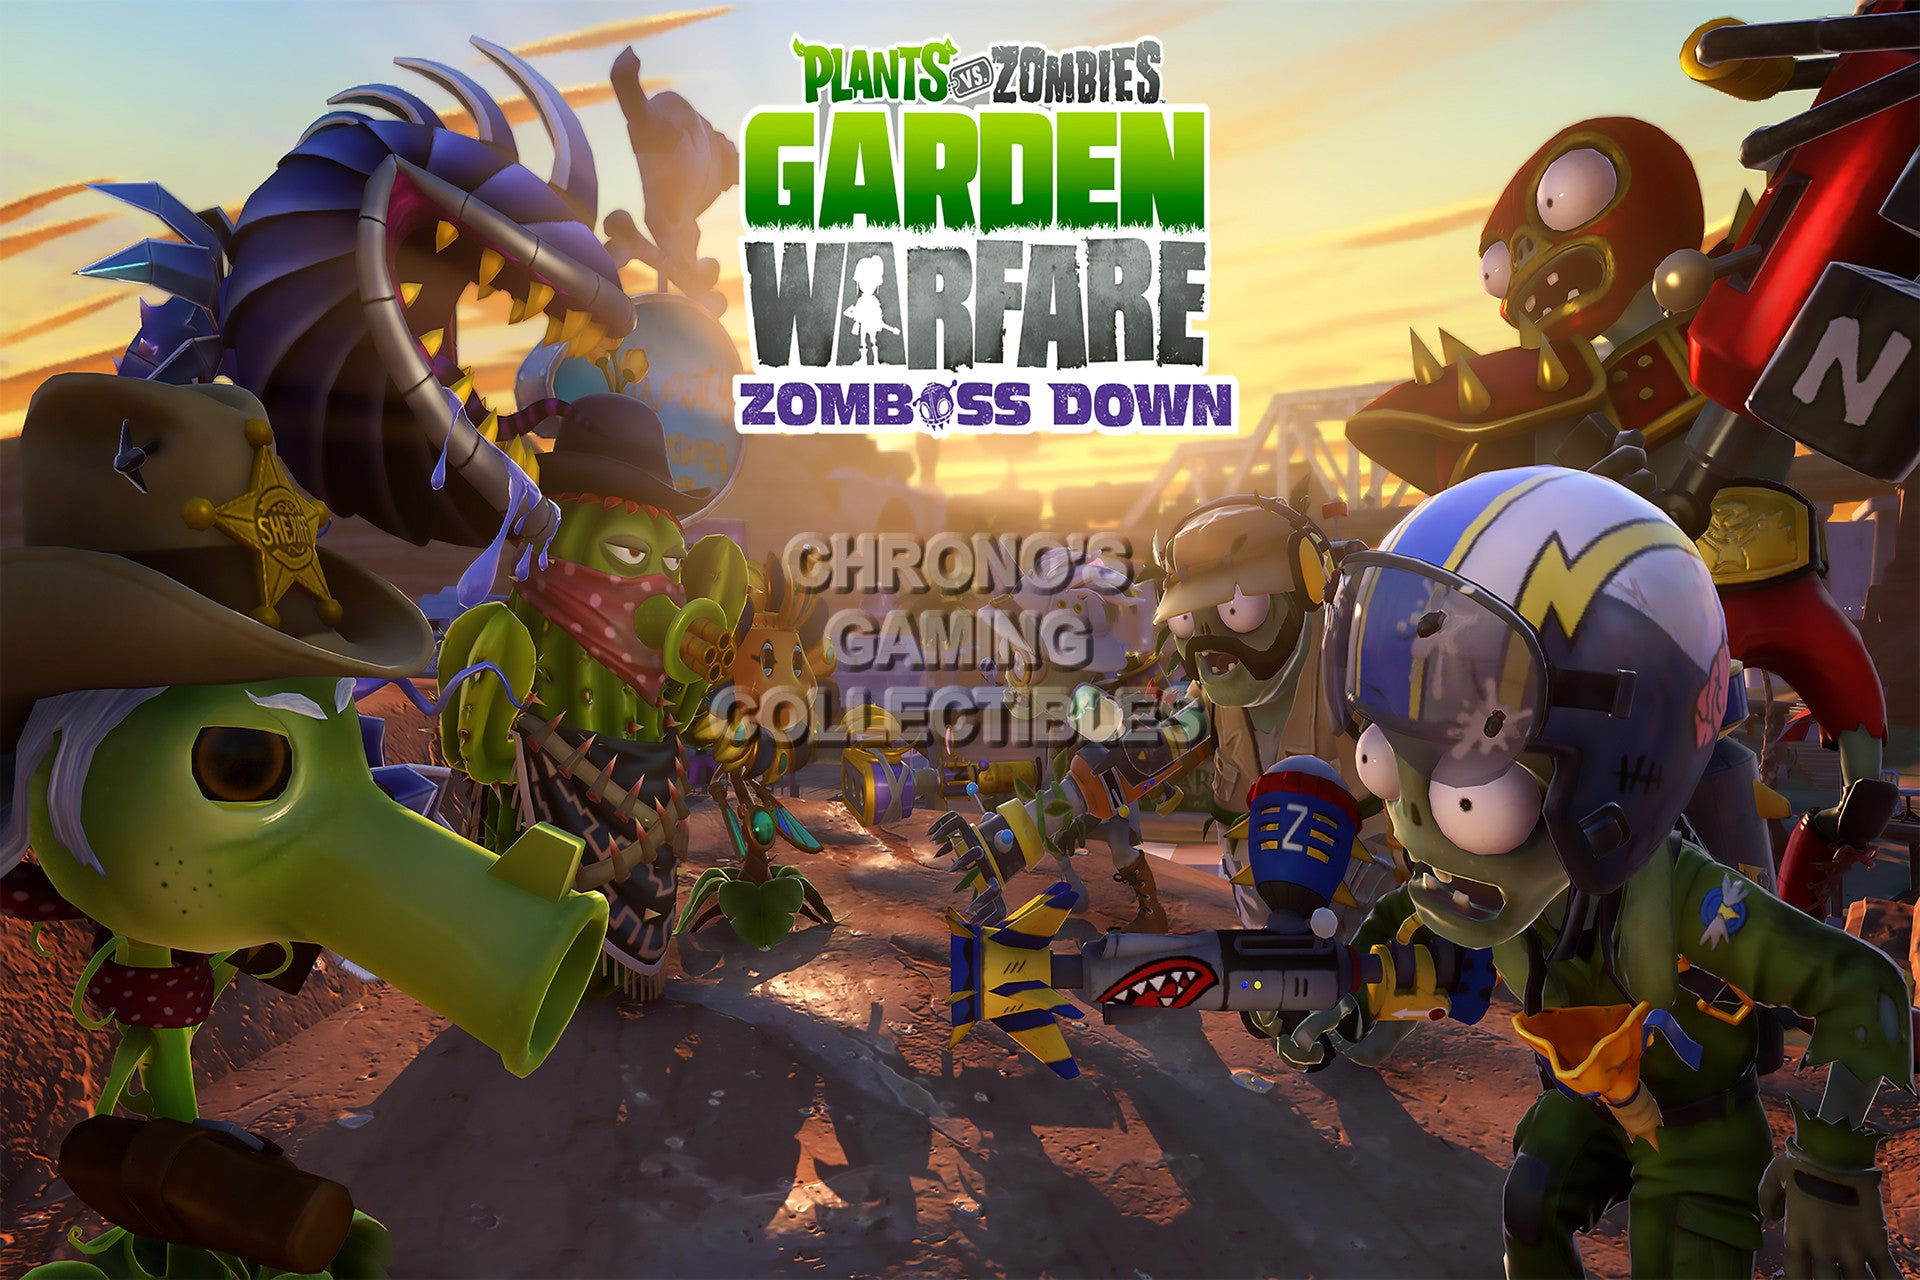 cgc huge poster plant vs zombies garden warfare ps3 ps4 xbox 360 one pvz009 - Plants Vs Zombies Garden Warfare 2 Xbox 360